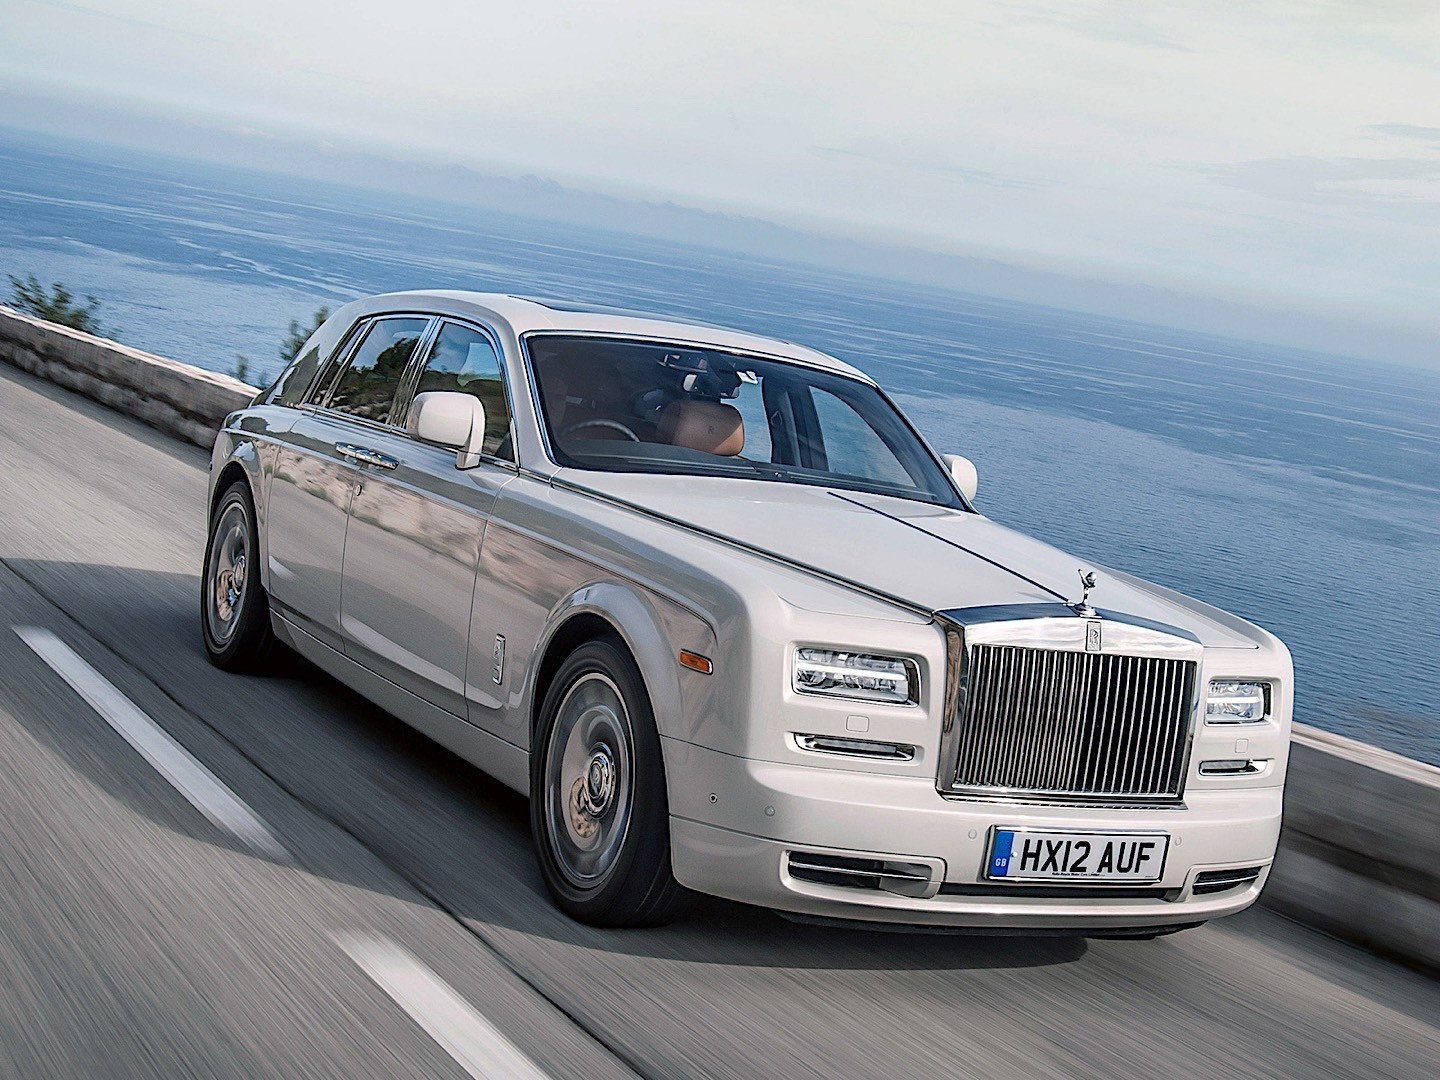 rolls royce phantom specs 2012 2013 2014 2015 2016 2017 autoevolution. Black Bedroom Furniture Sets. Home Design Ideas